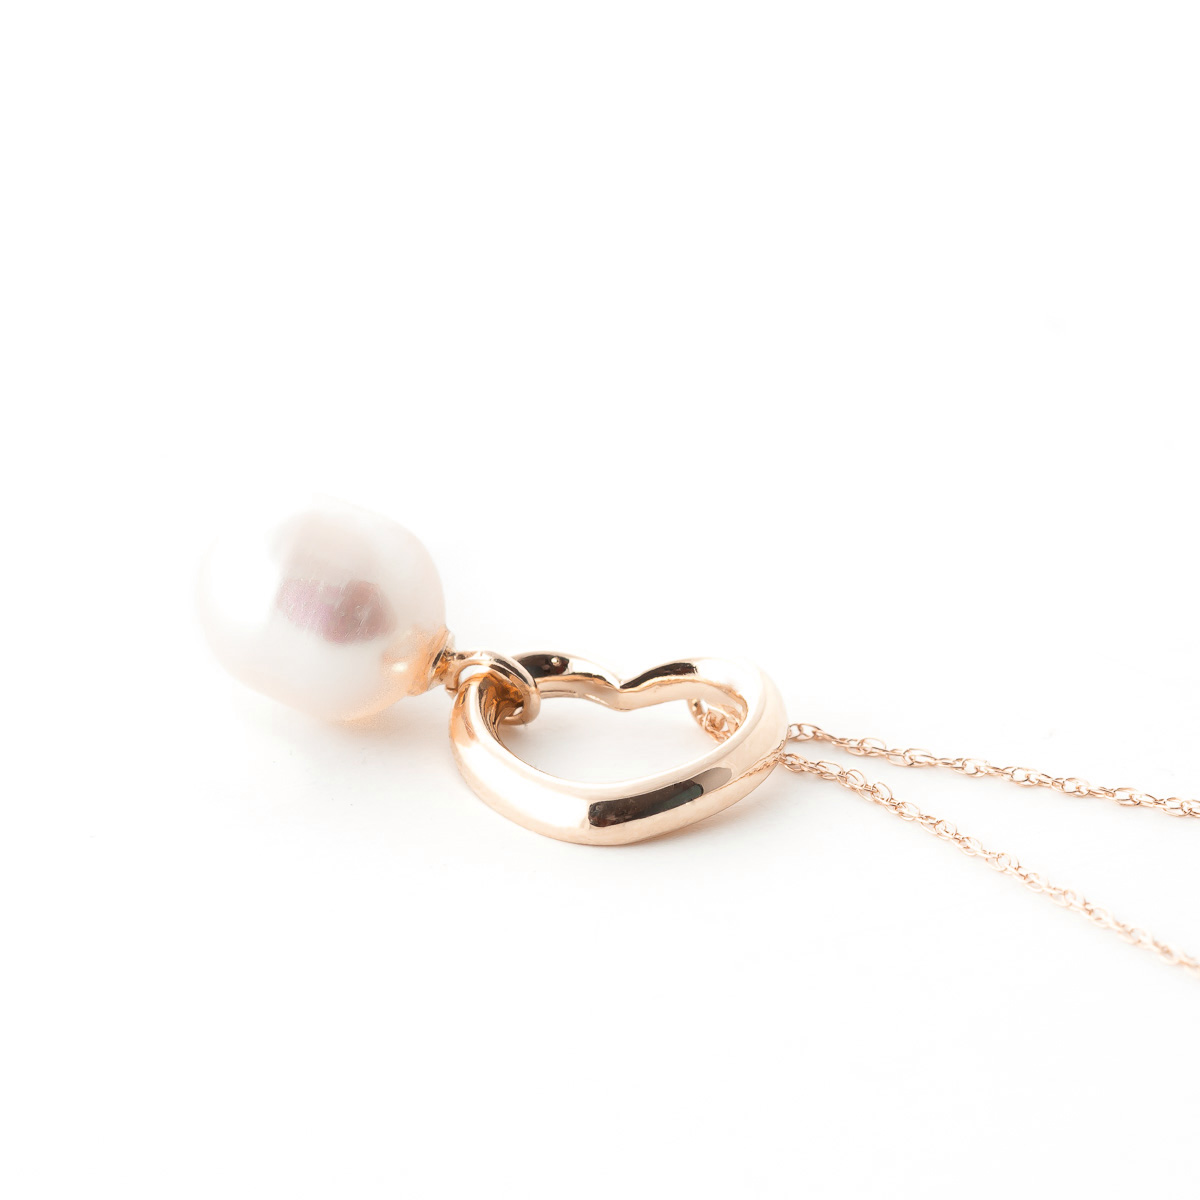 Pear Cut Pearl Pendant Necklace 4.0ct in 14K Rose Gold